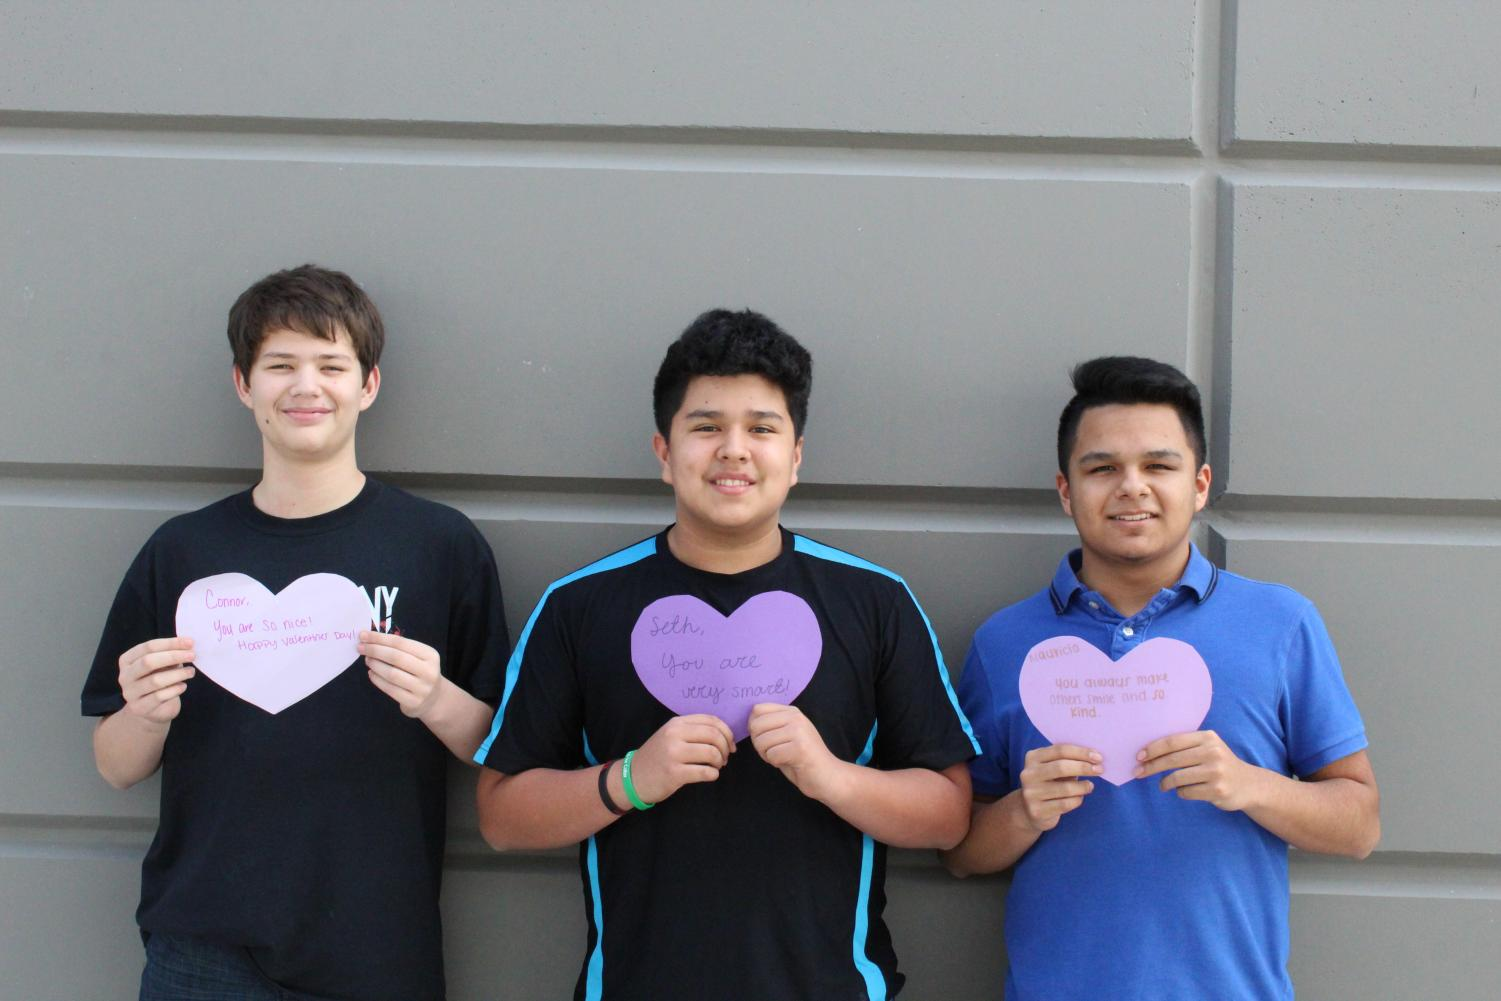 Students receive heart messages from the Student Council on Valentine's Day.